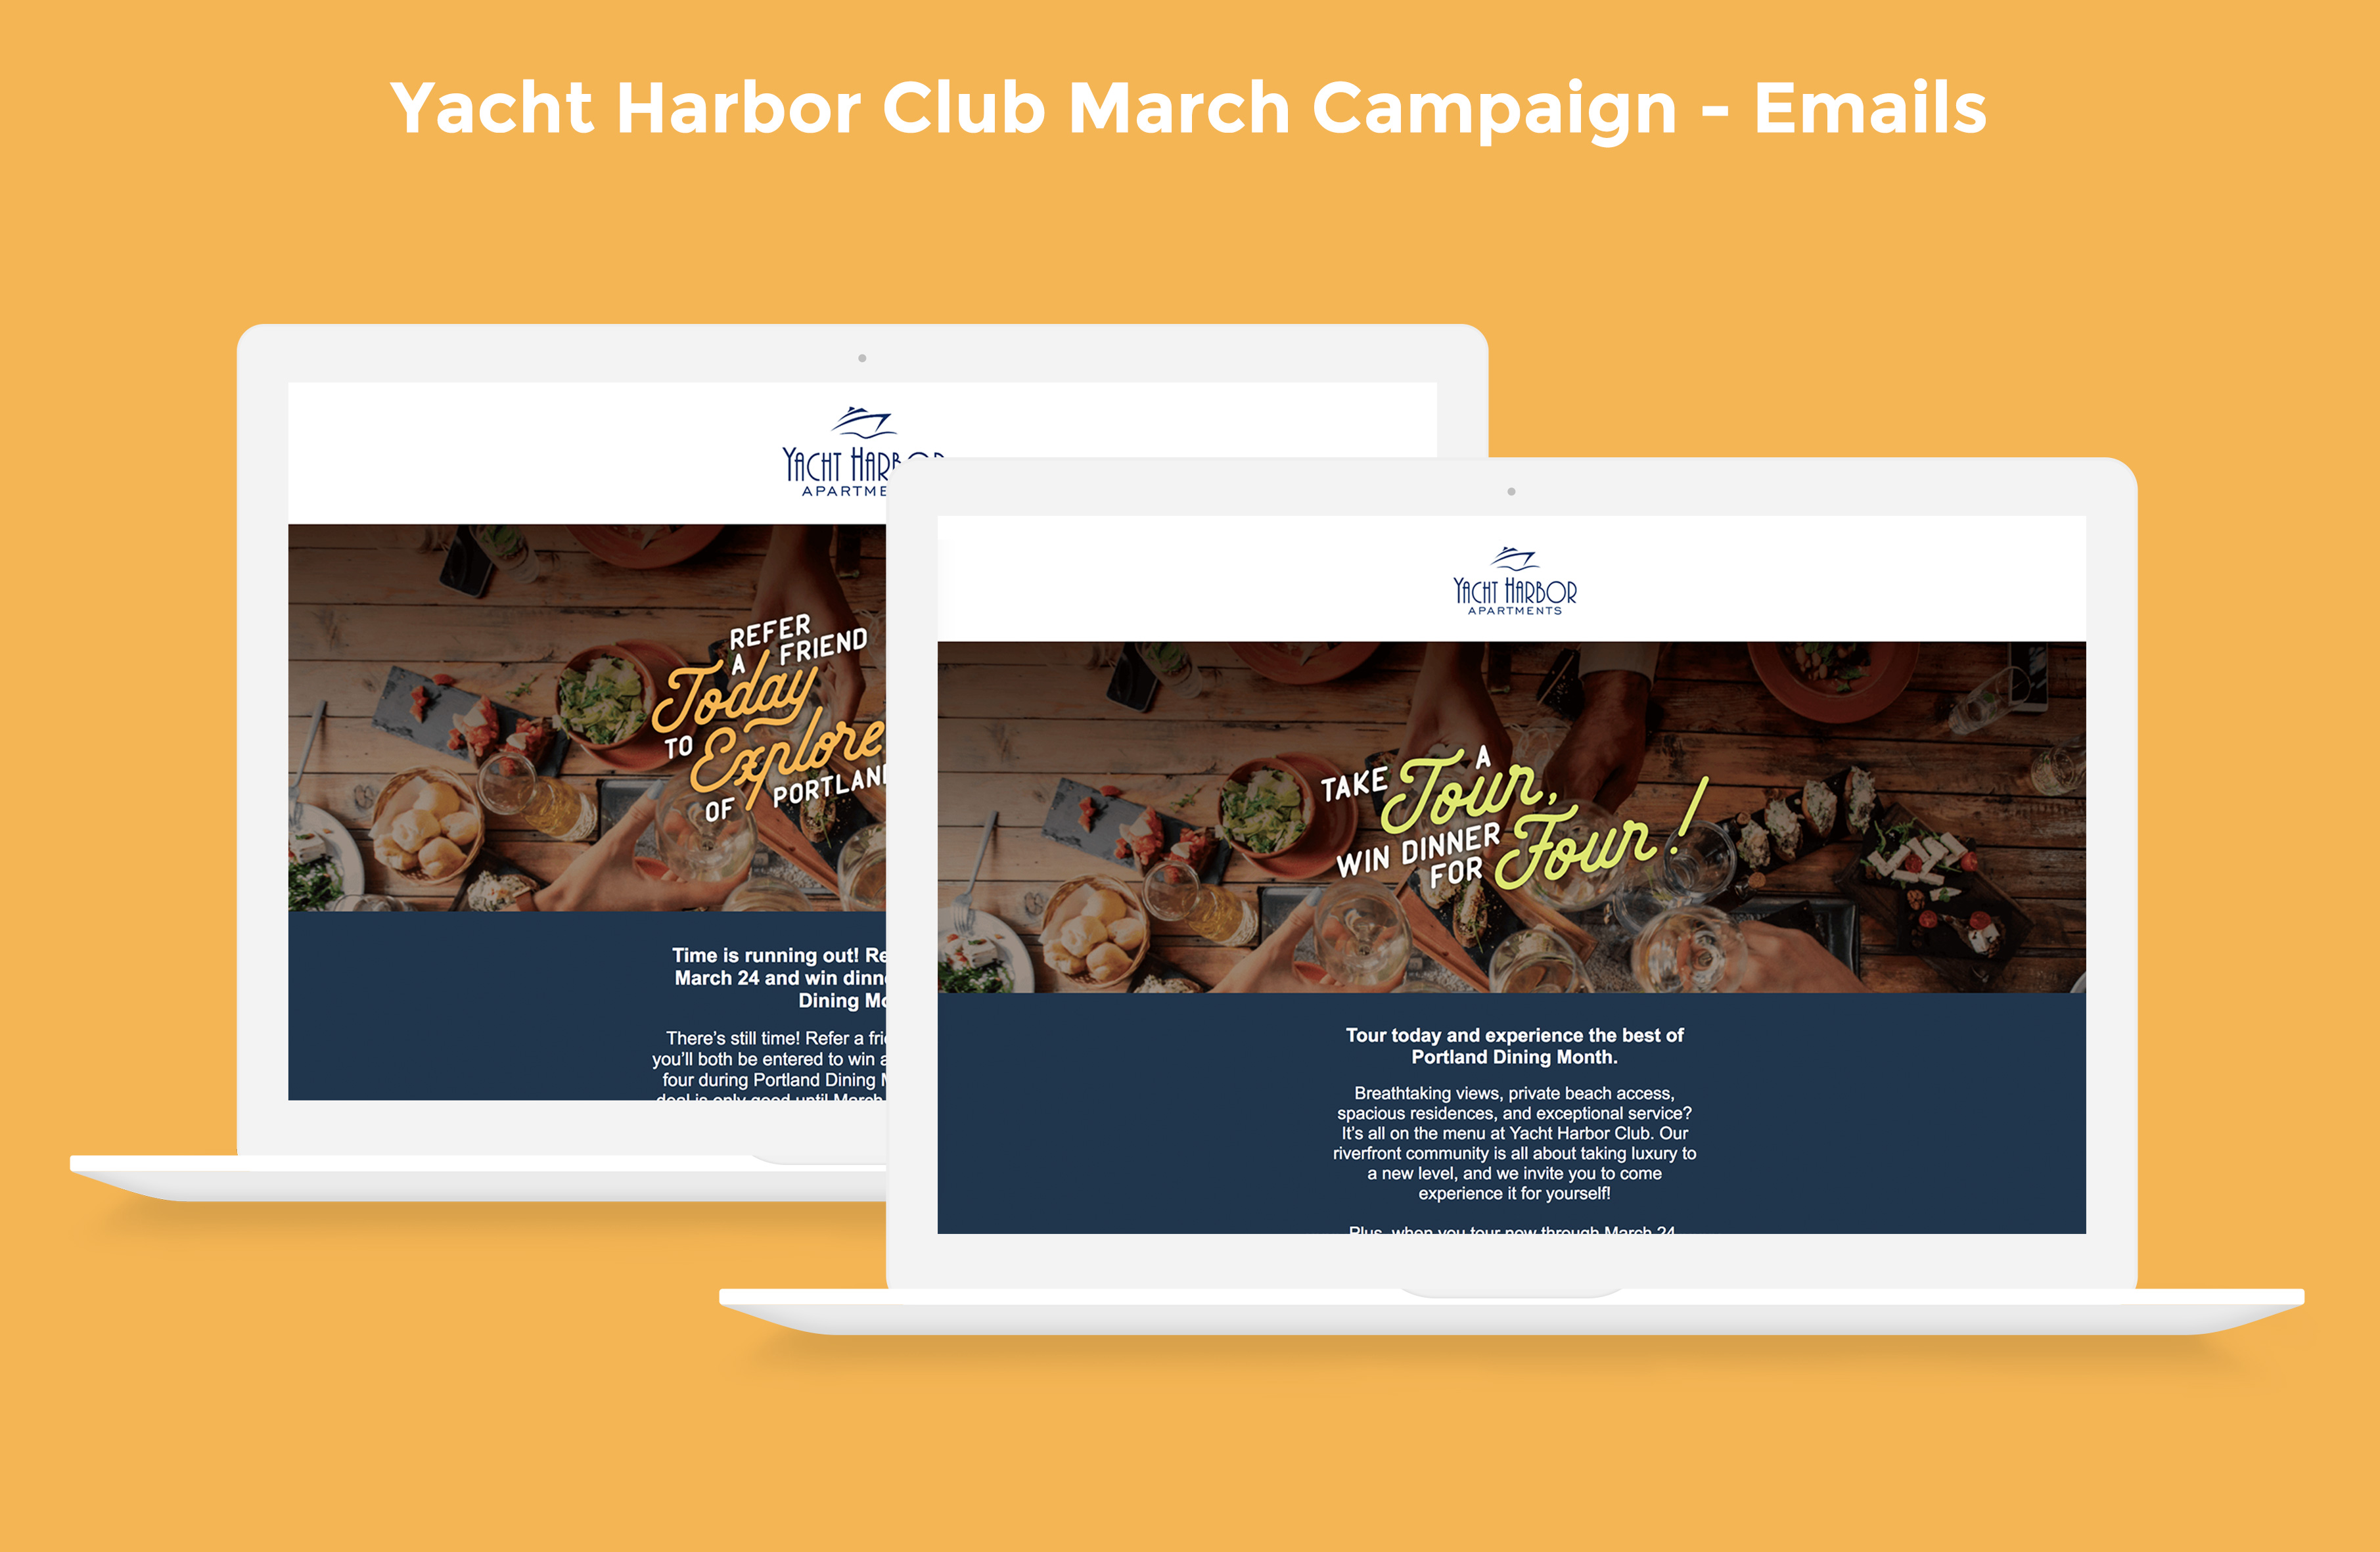 Yacht Harbor Club March Campaign Emails Image